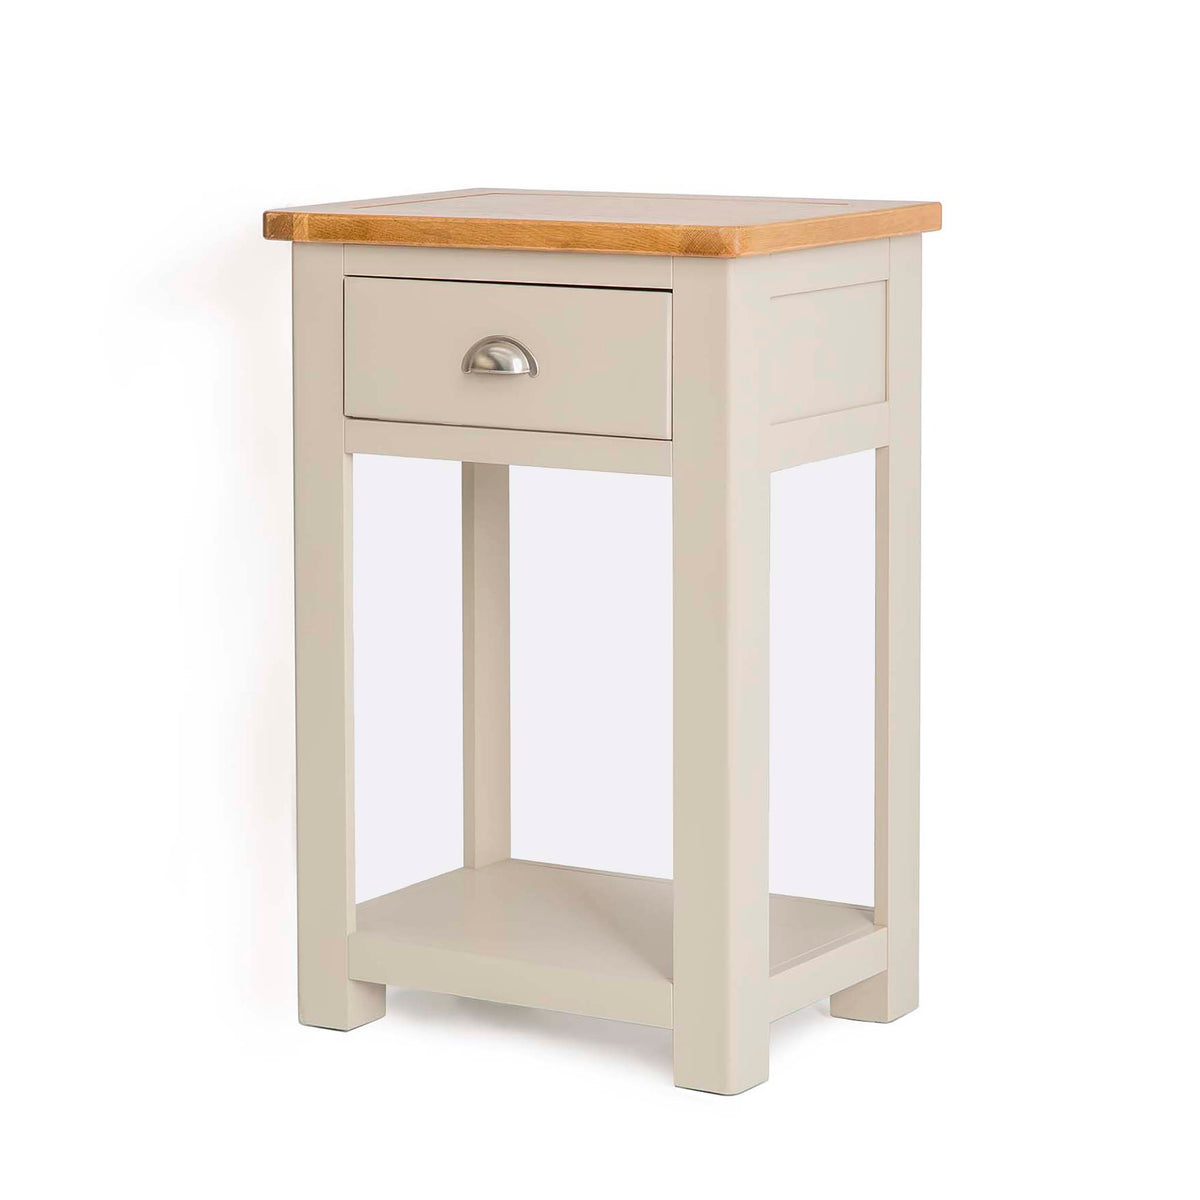 The Padstow Grey Small Hall Telephone Table from Roseland Furniture